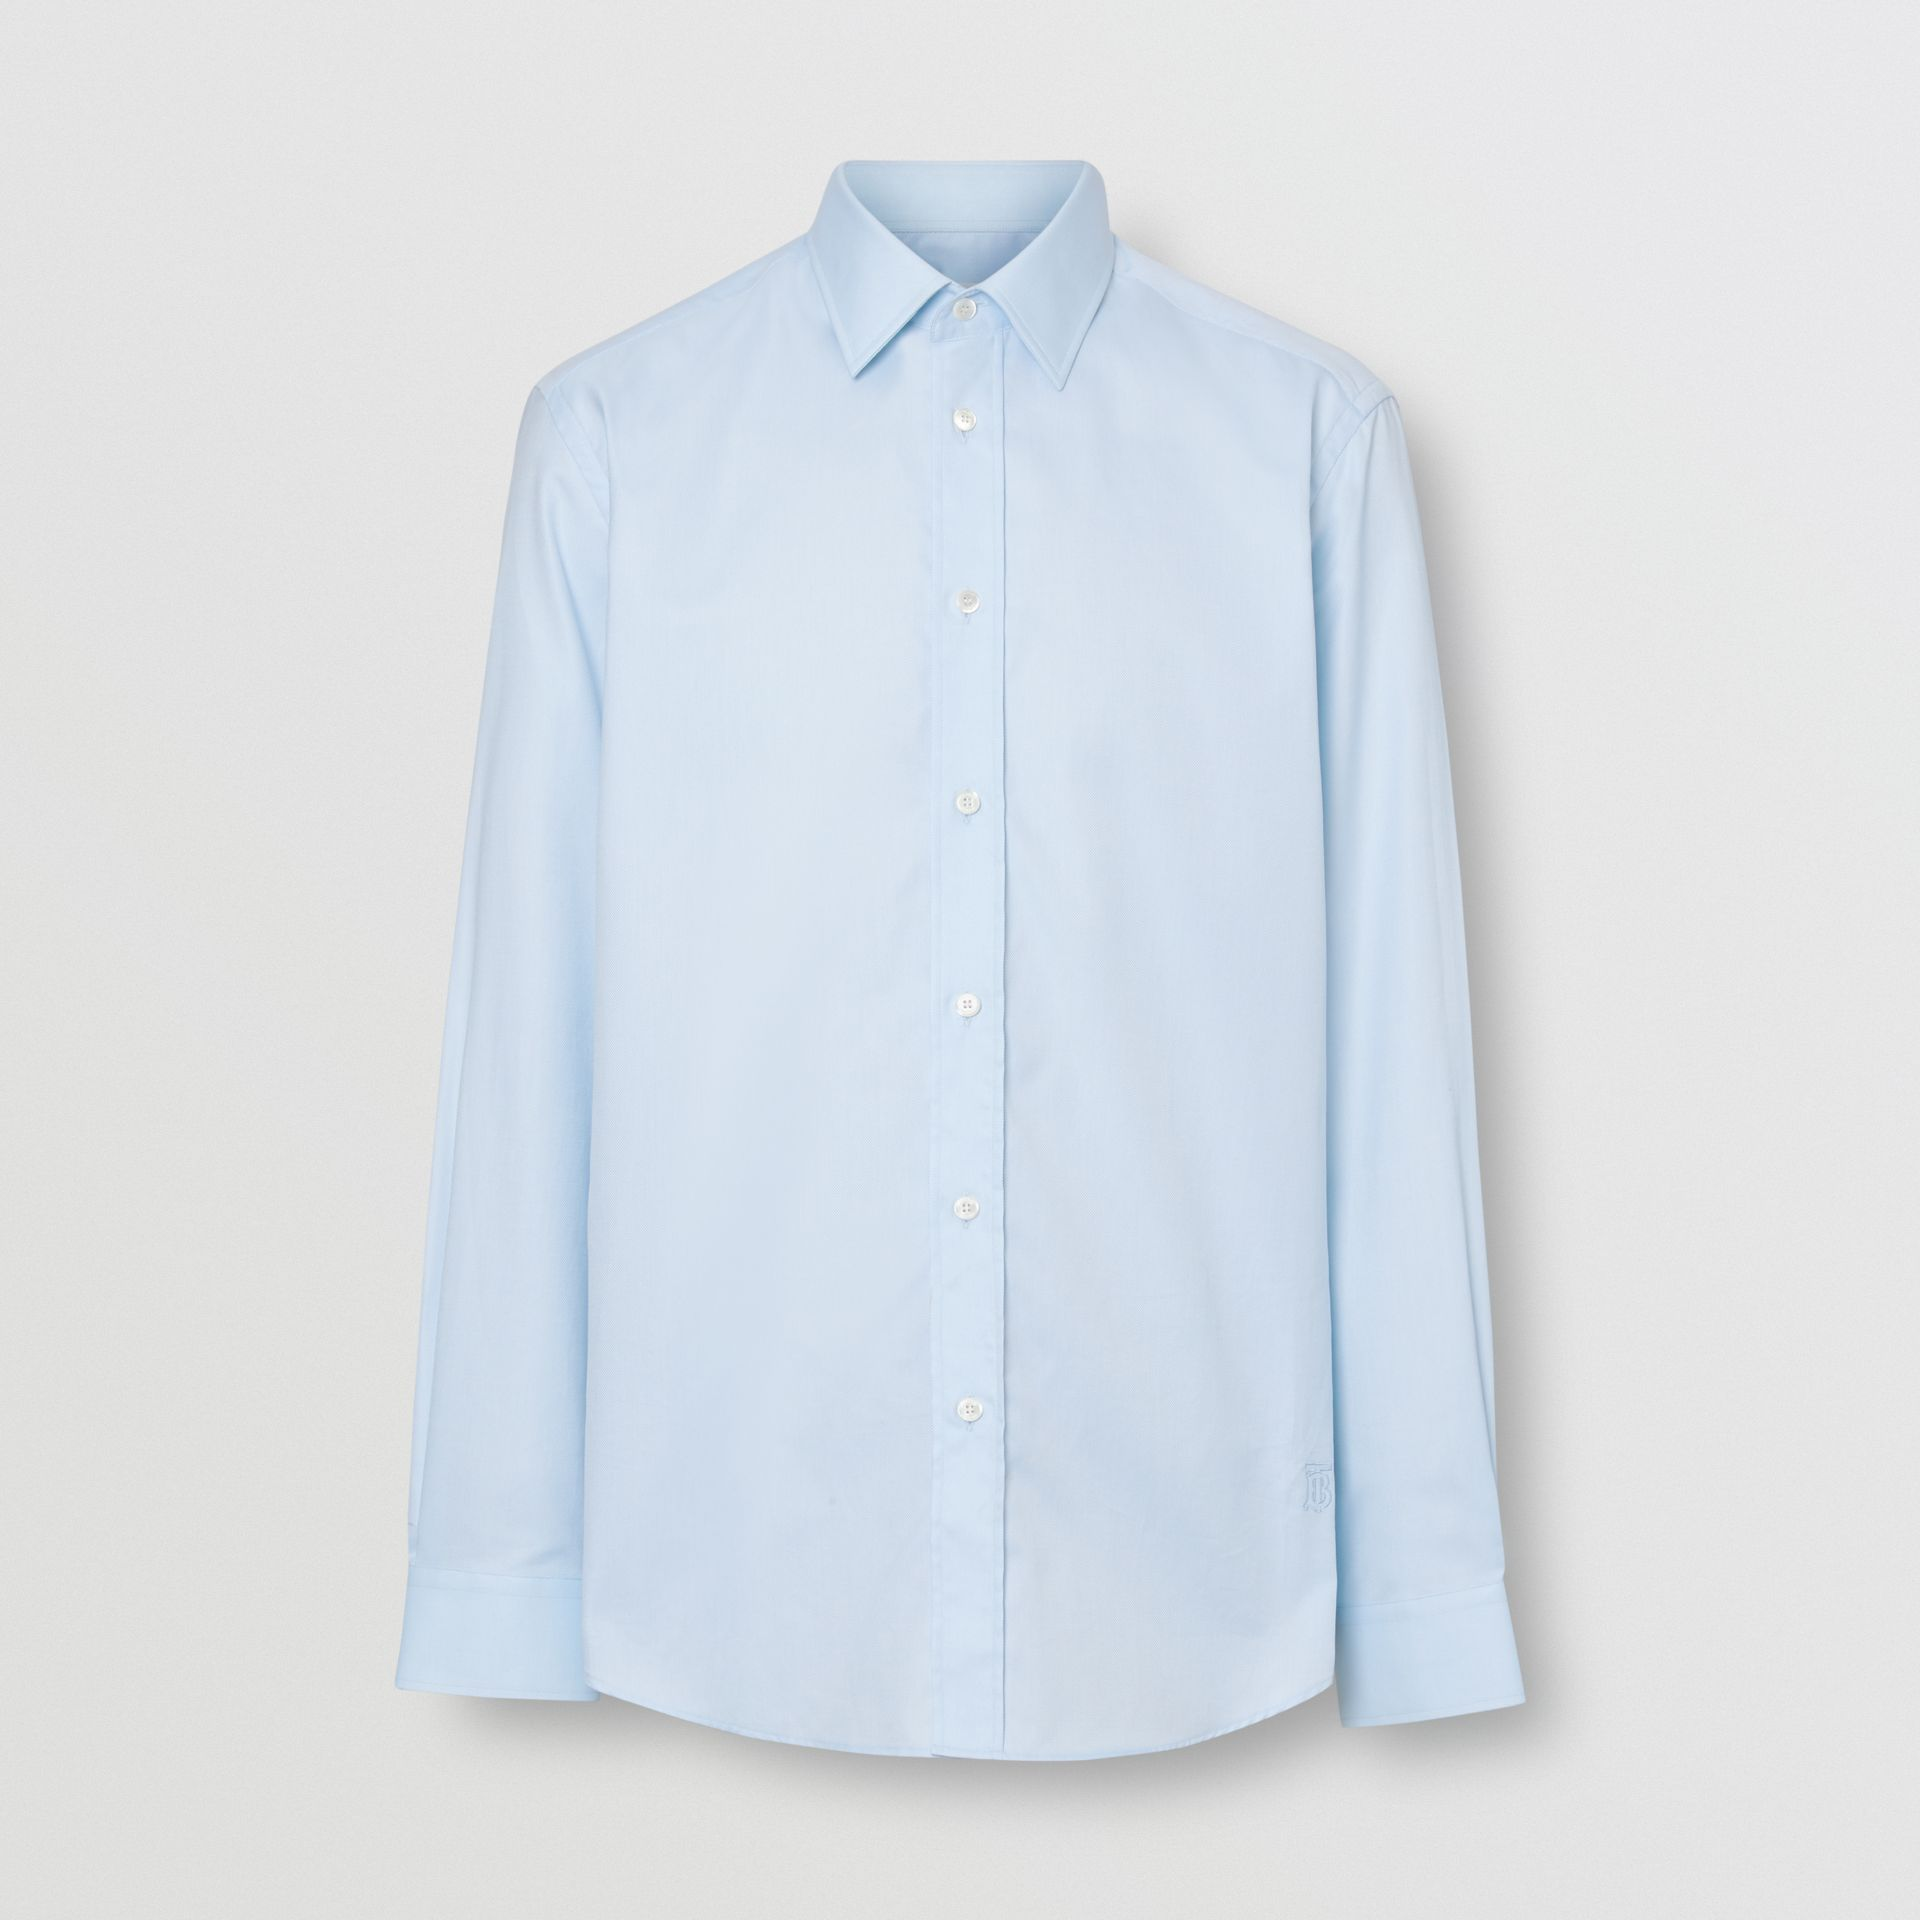 Classic Fit Monogram Motif Cotton Oxford Shirt in Pale Blue - Men | Burberry United Kingdom - gallery image 3